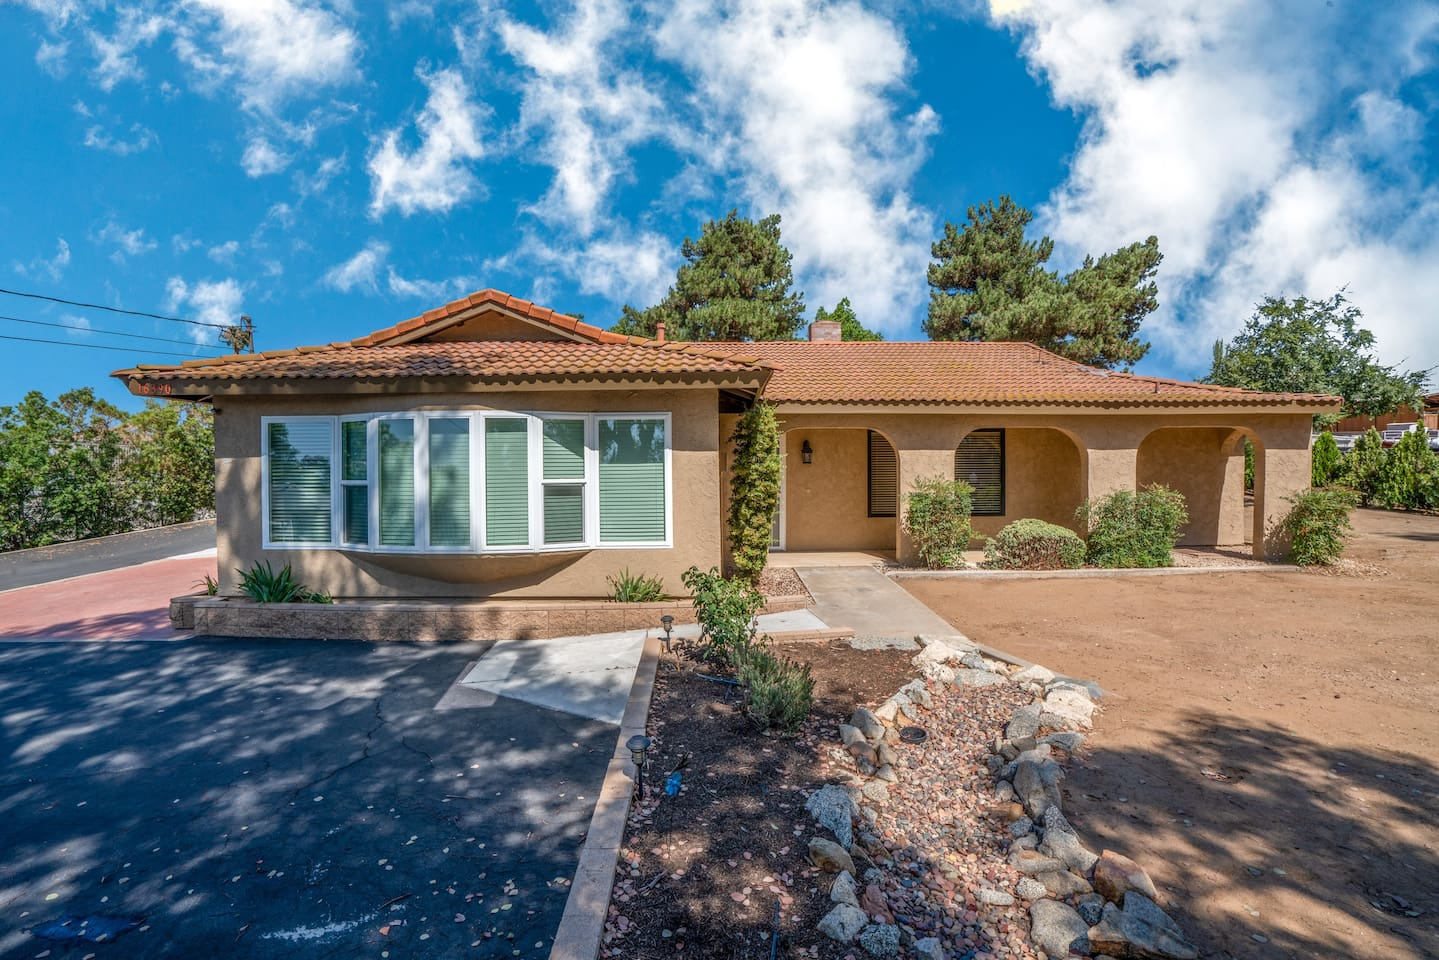 Our gorgeous, private home in Riverside!